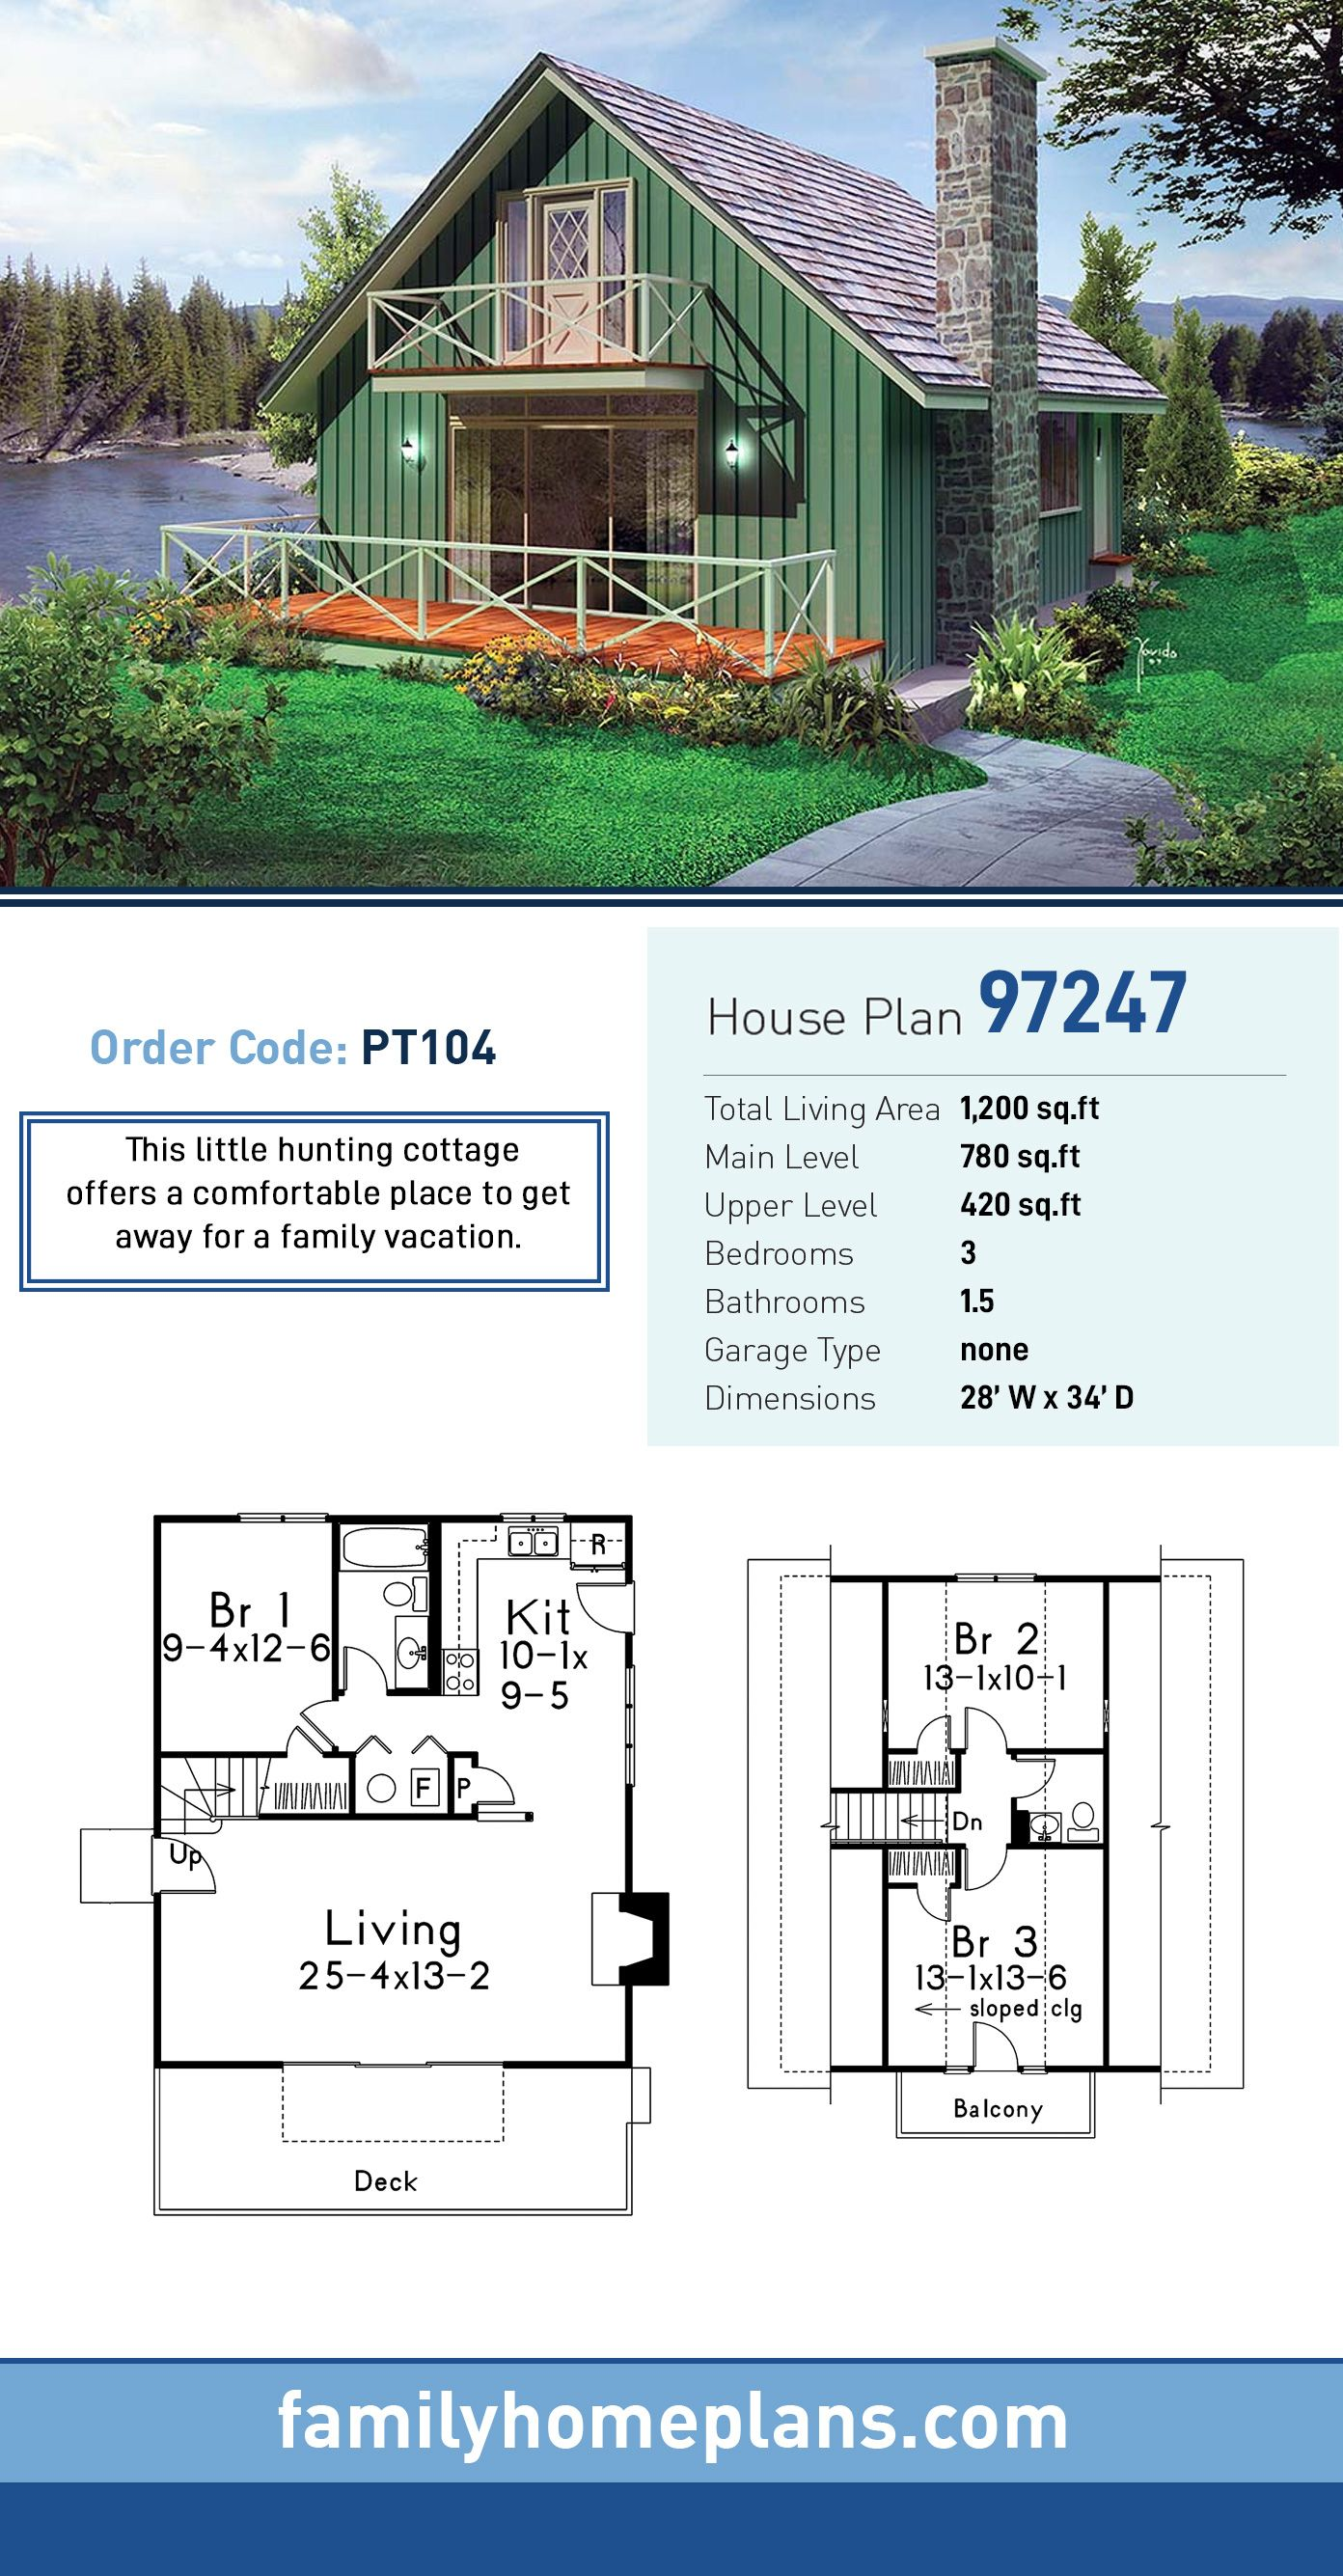 Cottage House Plan 97247  Total Living Area 1200 SQ FT 3 bedrooms and 15 bathrooms This little hunting cottage offers a comfortable place to get away for a family vacatio...